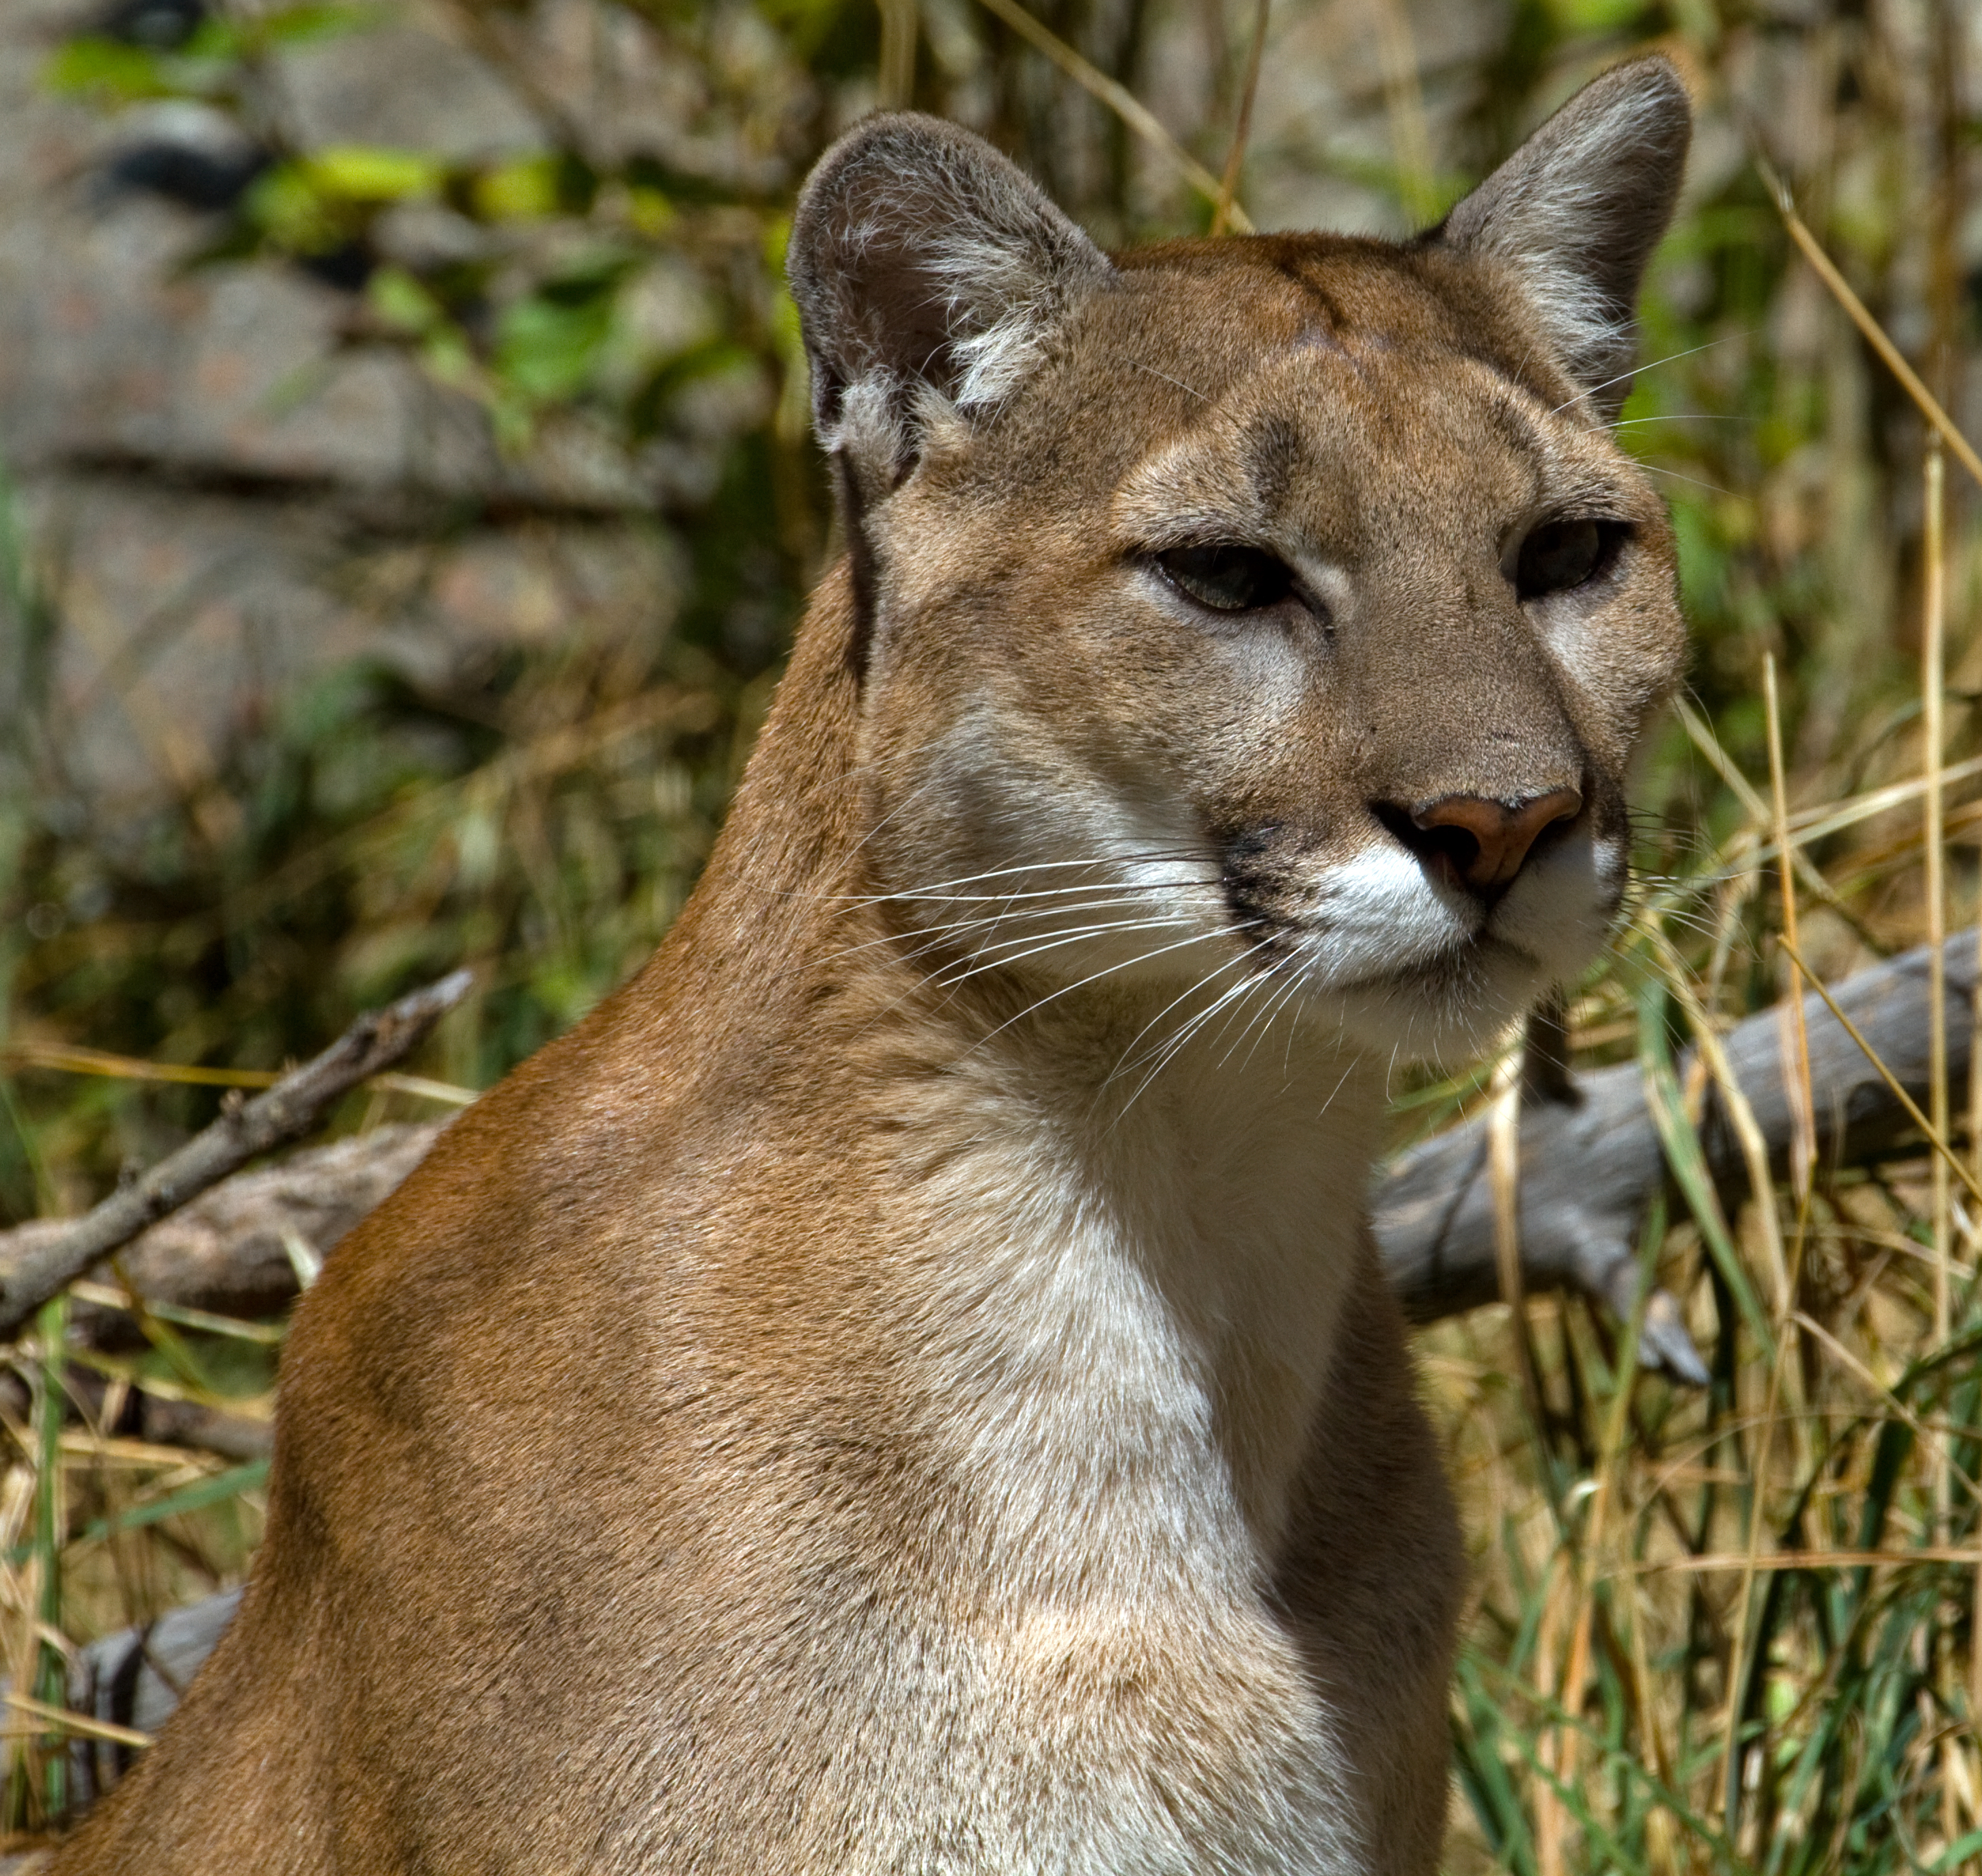 File:Cougar 1 (7974448176).jpg - Wikimedia Commons